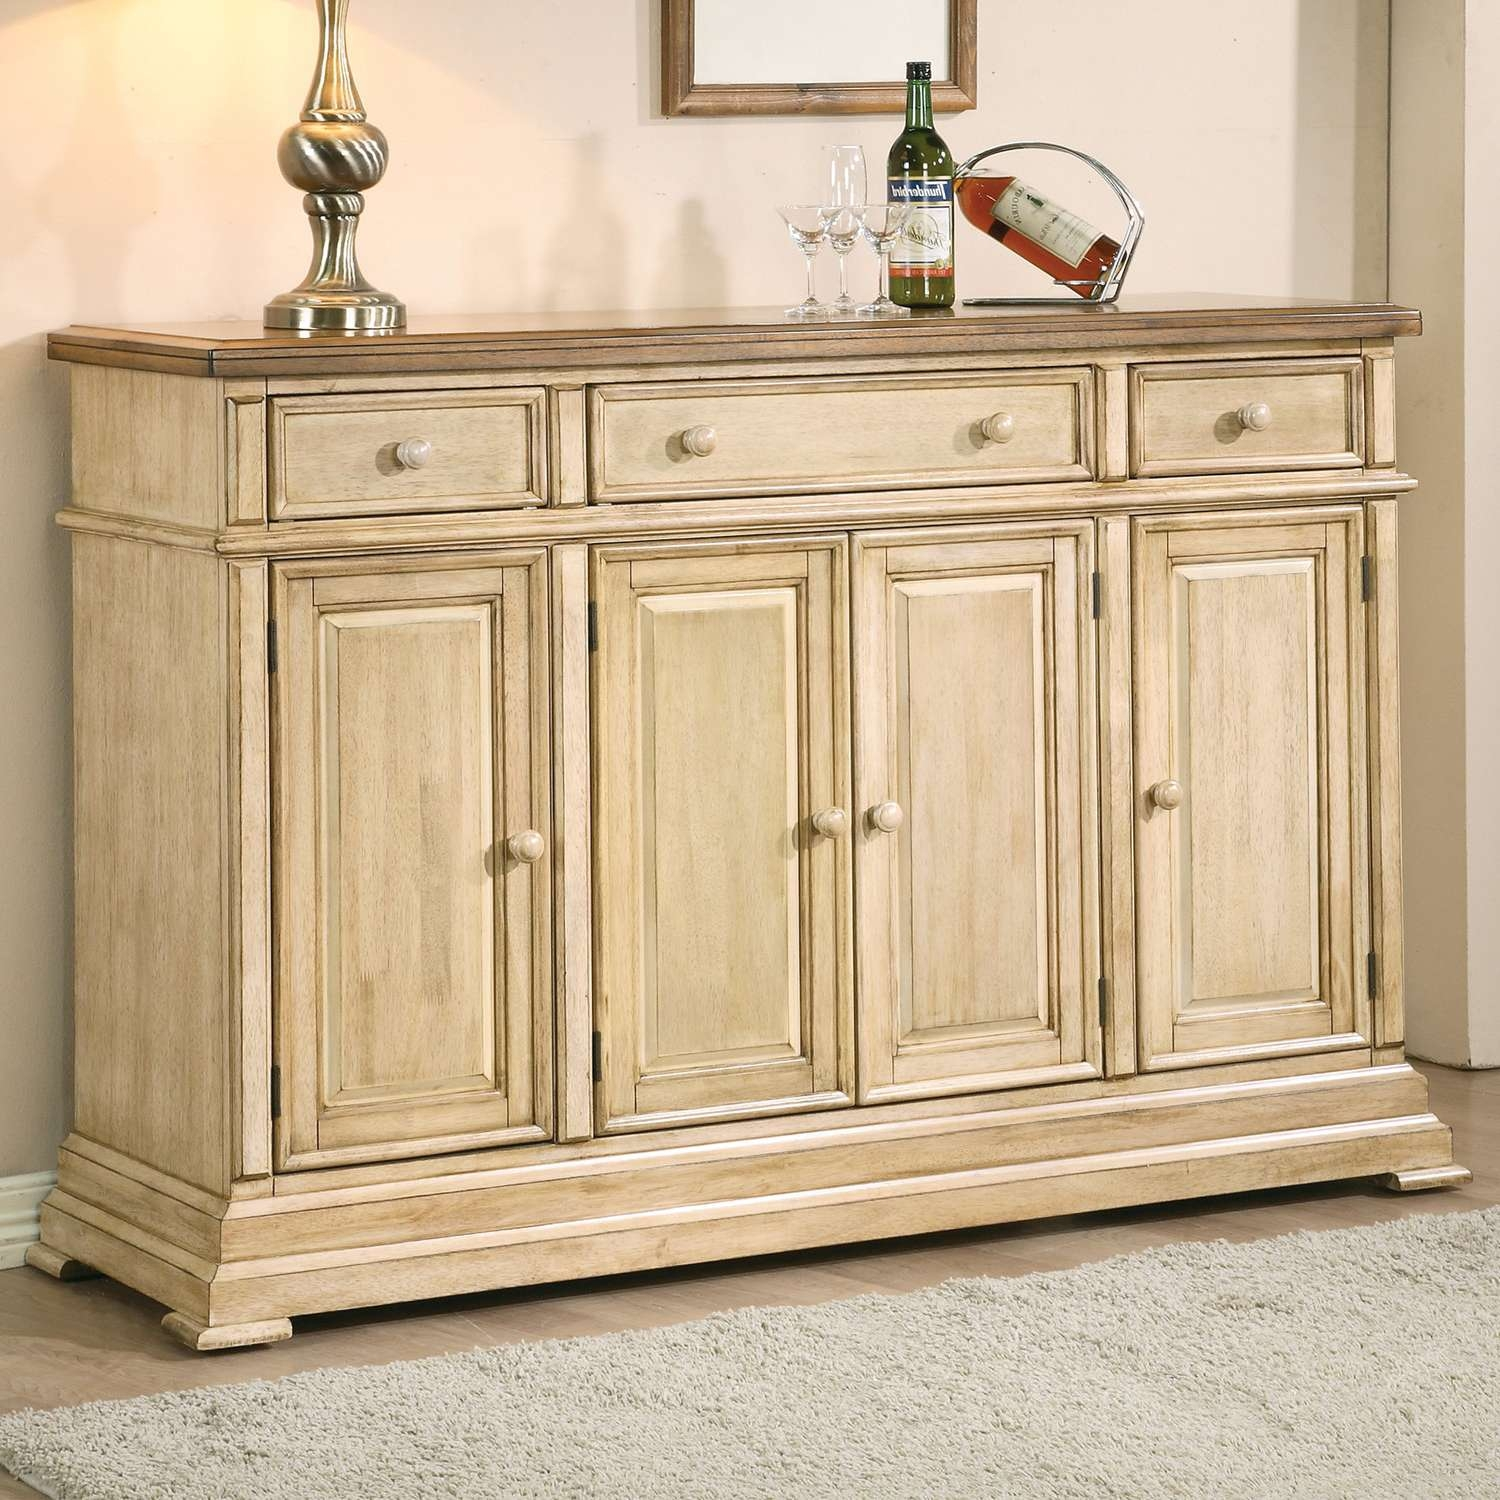 Best Of White Buffet Sideboard – Bjdgjy With Buffet Sideboards (View 5 of 20)